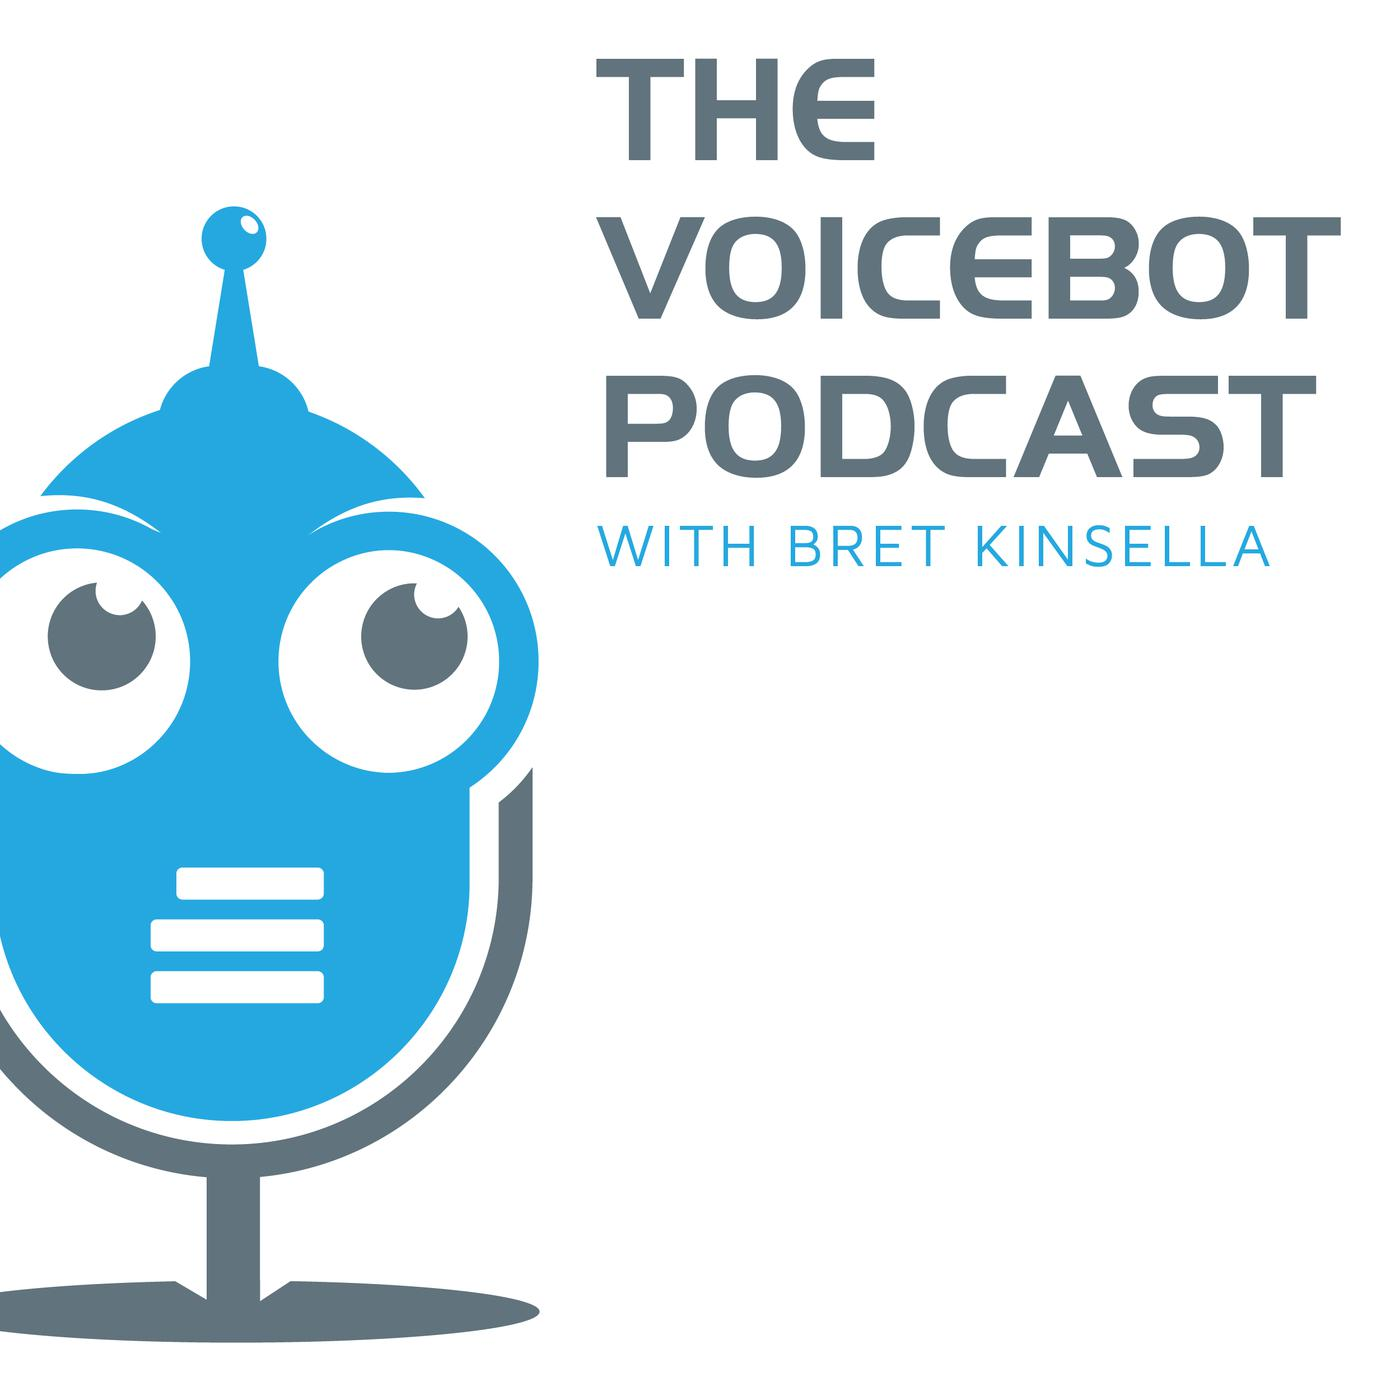 The Voicebot Podcast - Bret Kinsella | Listen Notes